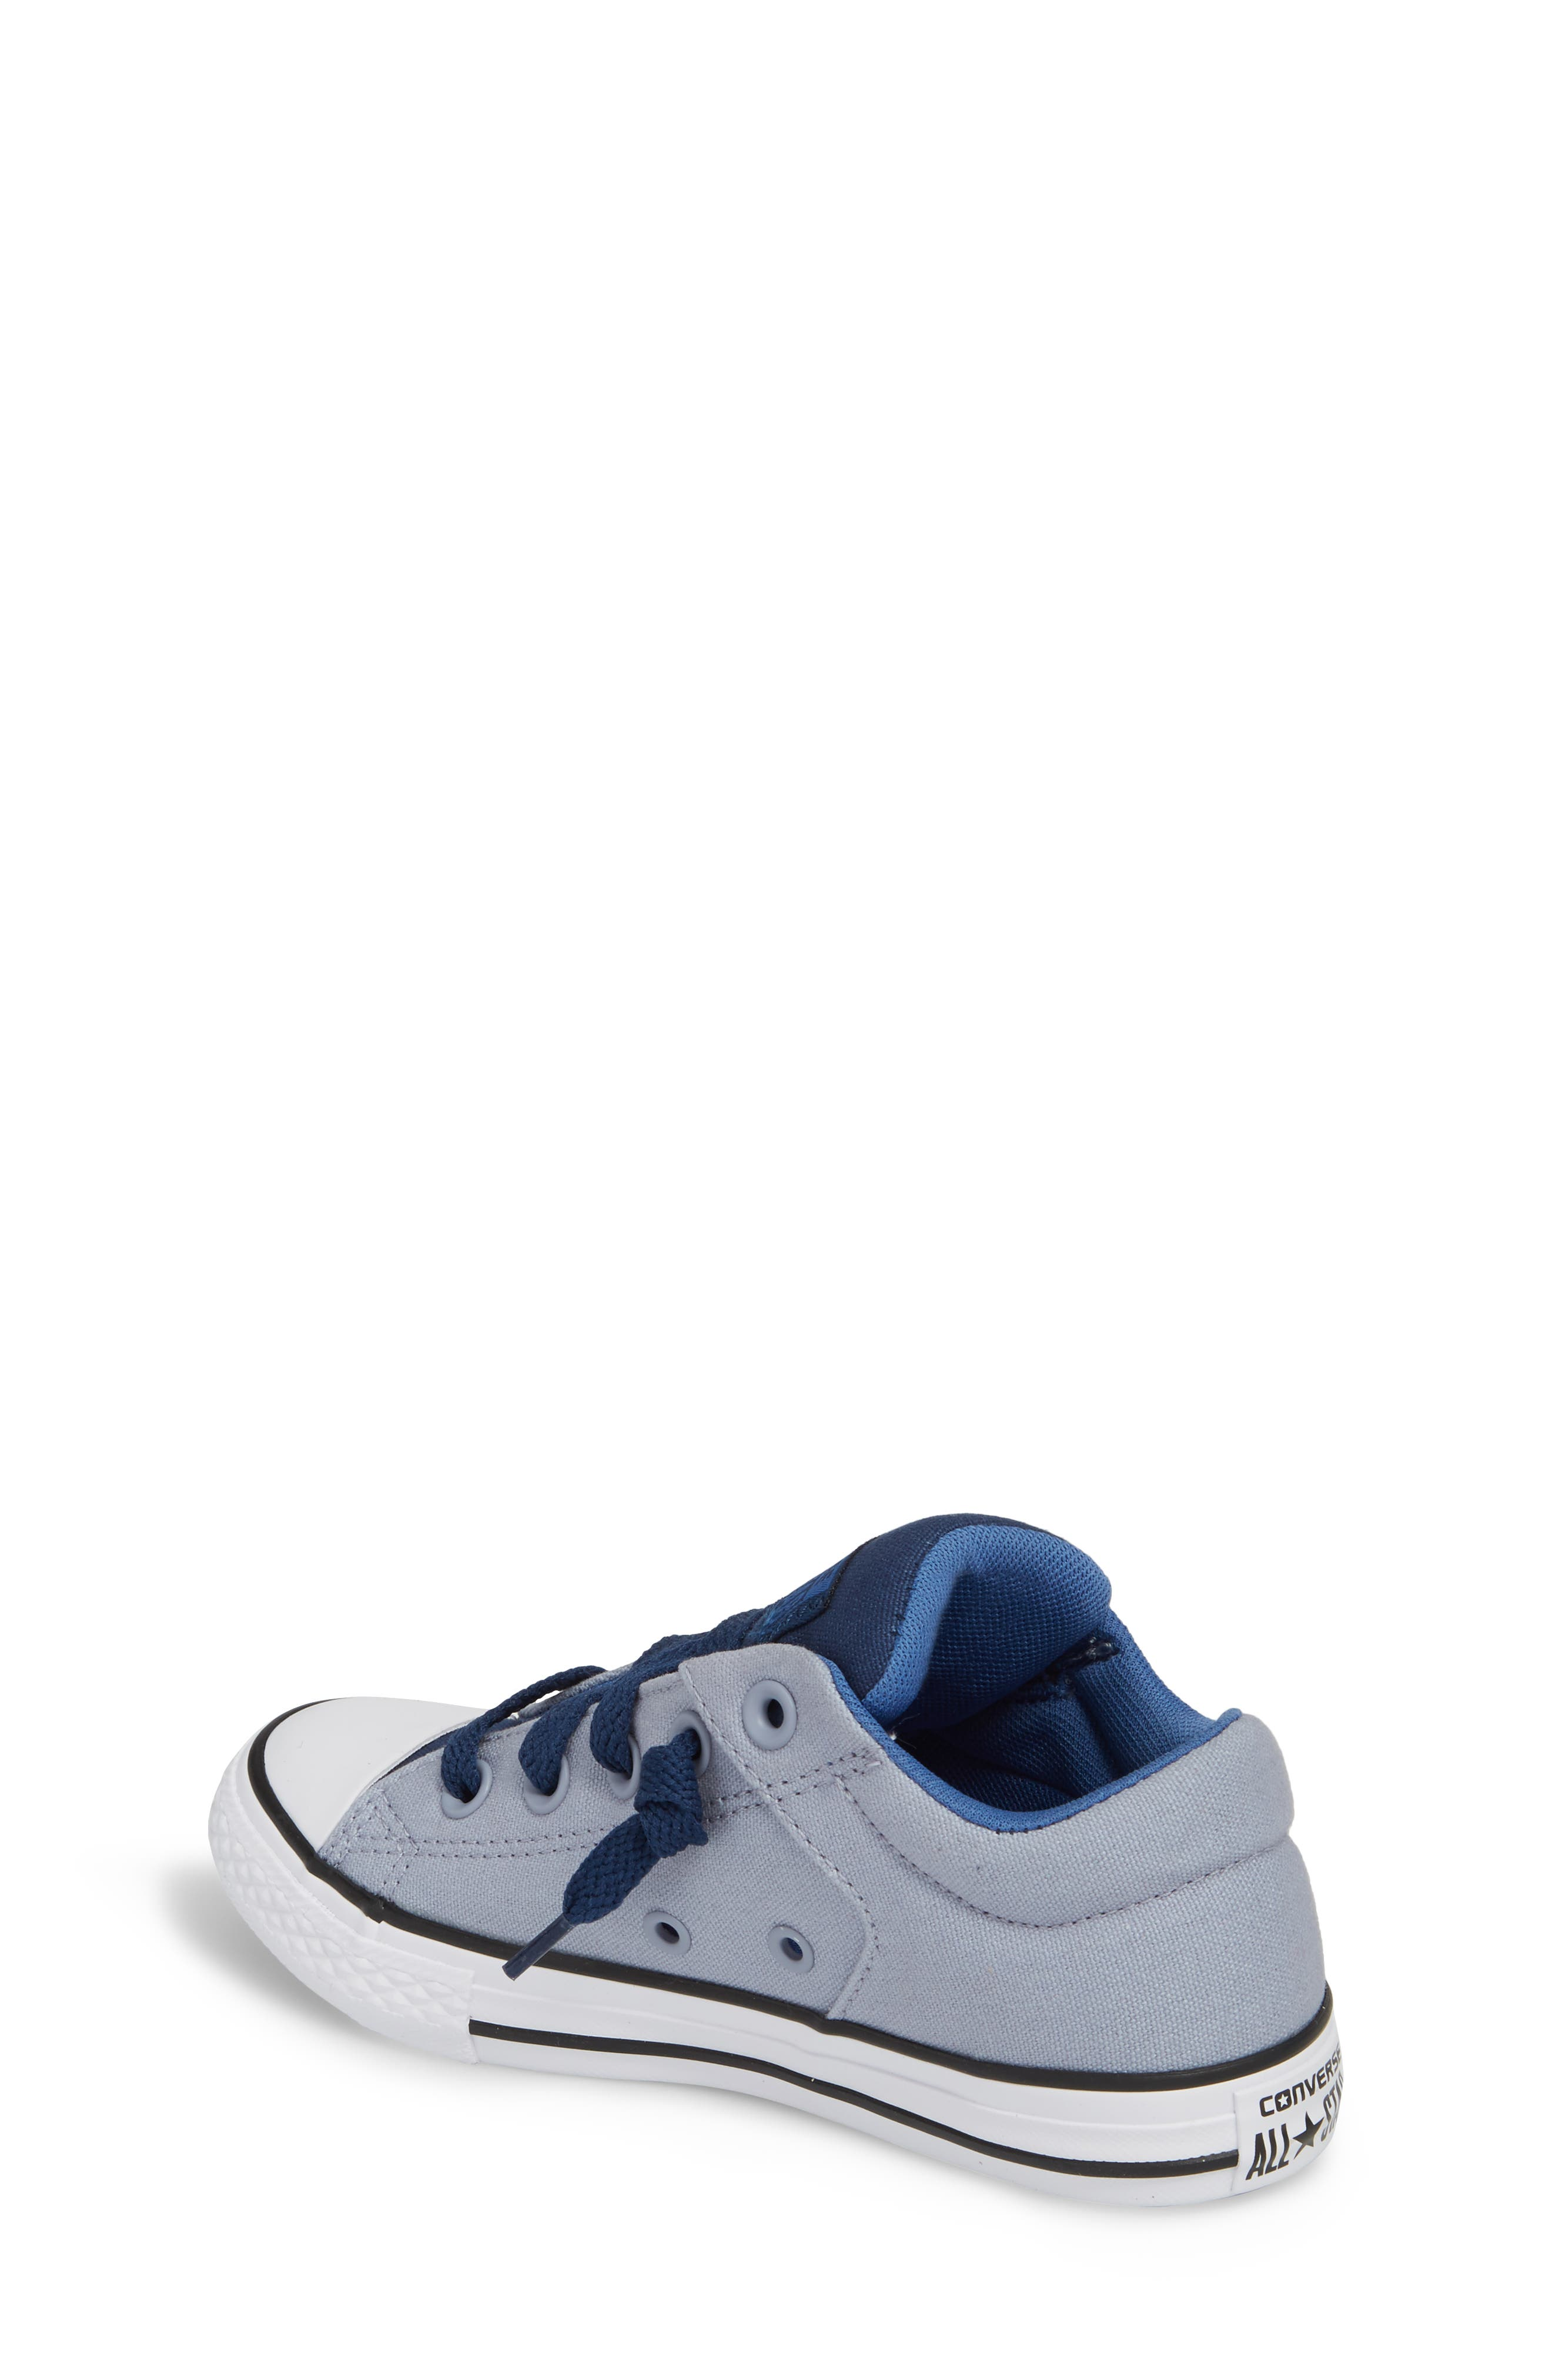 Chuck Taylor<sup>®</sup> All Star<sup>®</sup> 'High Street' Slip-On Sneaker,                             Alternate thumbnail 2, color,                             022